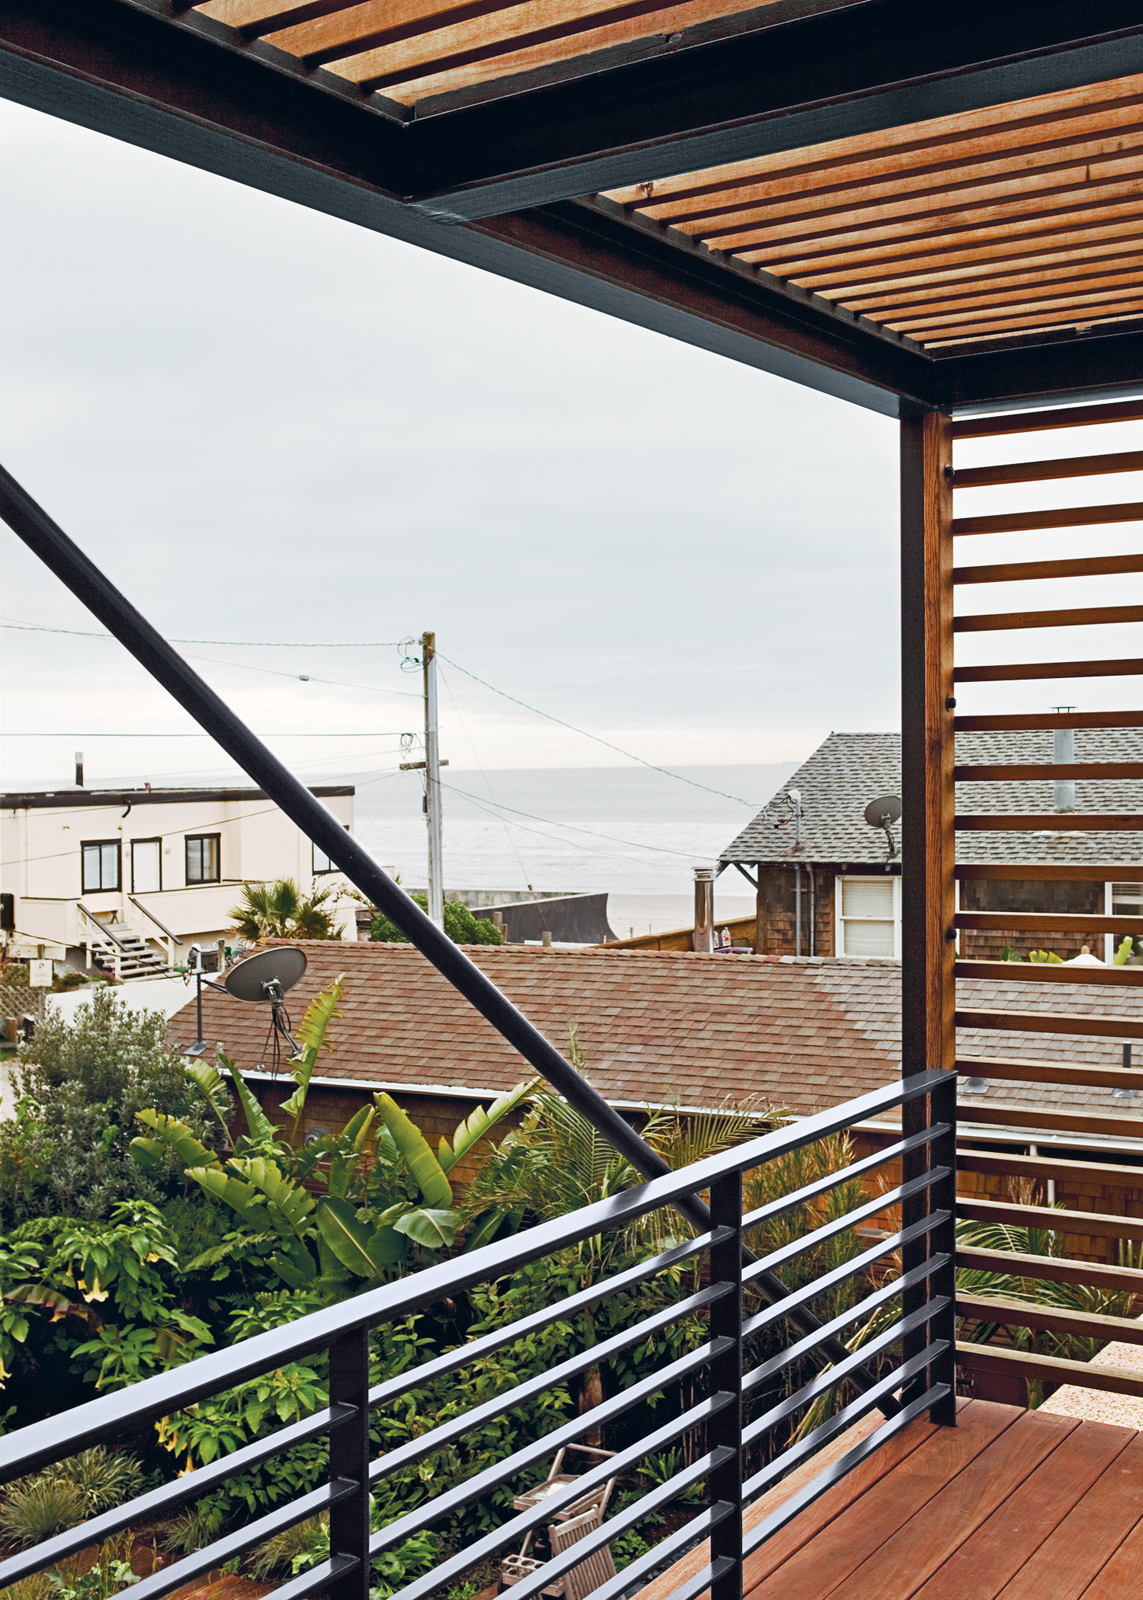 With almost as much area dedicated to decks as to interiors, Peter Dwares's house is truly made for outdoor enjoyment.